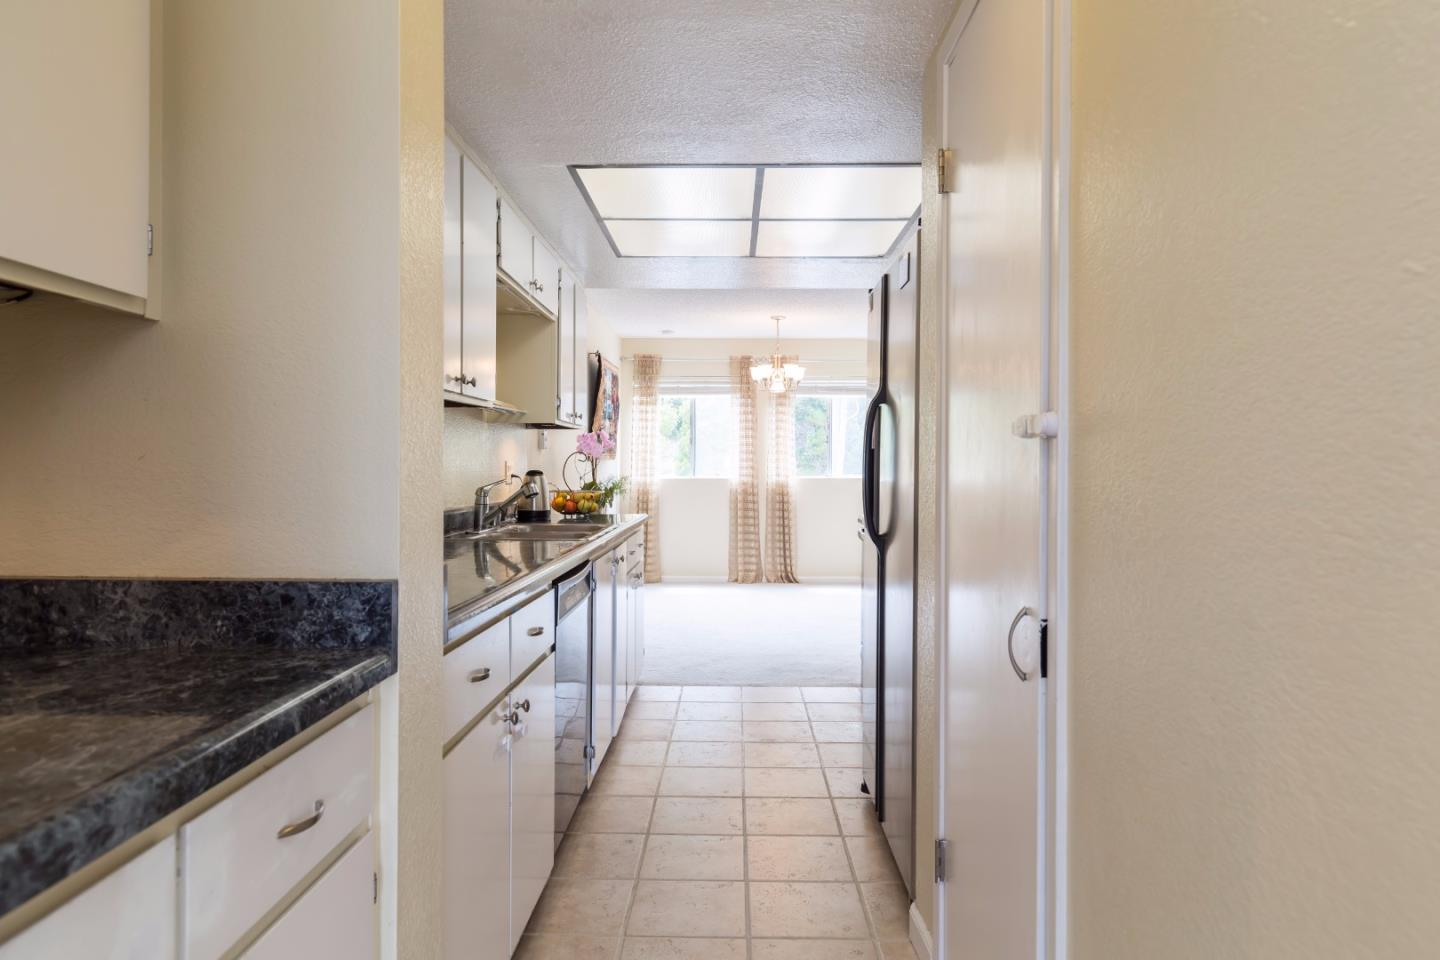 Additional photo for property listing at 3550 Carter Drive  South San Francisco, California 94080 United States